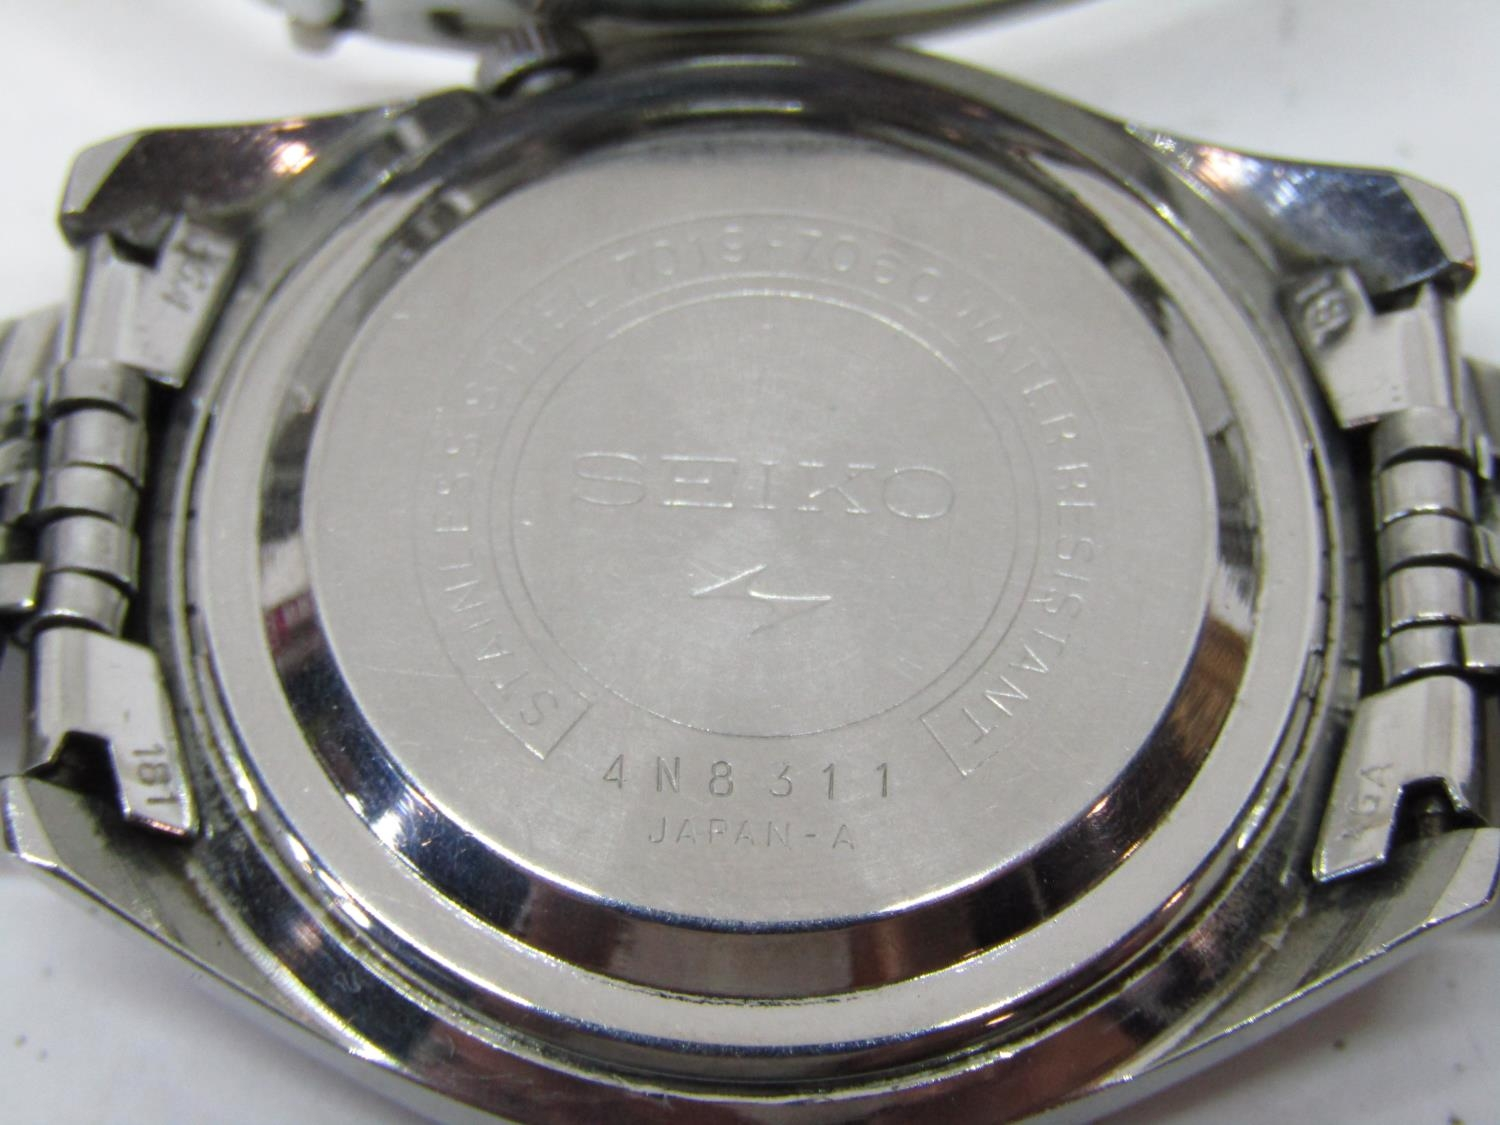 Vintage gent's Seiko 5 Actus Pepsi 21 jewels stainless steel wristwatch, currently running, 36mm - Image 8 of 8